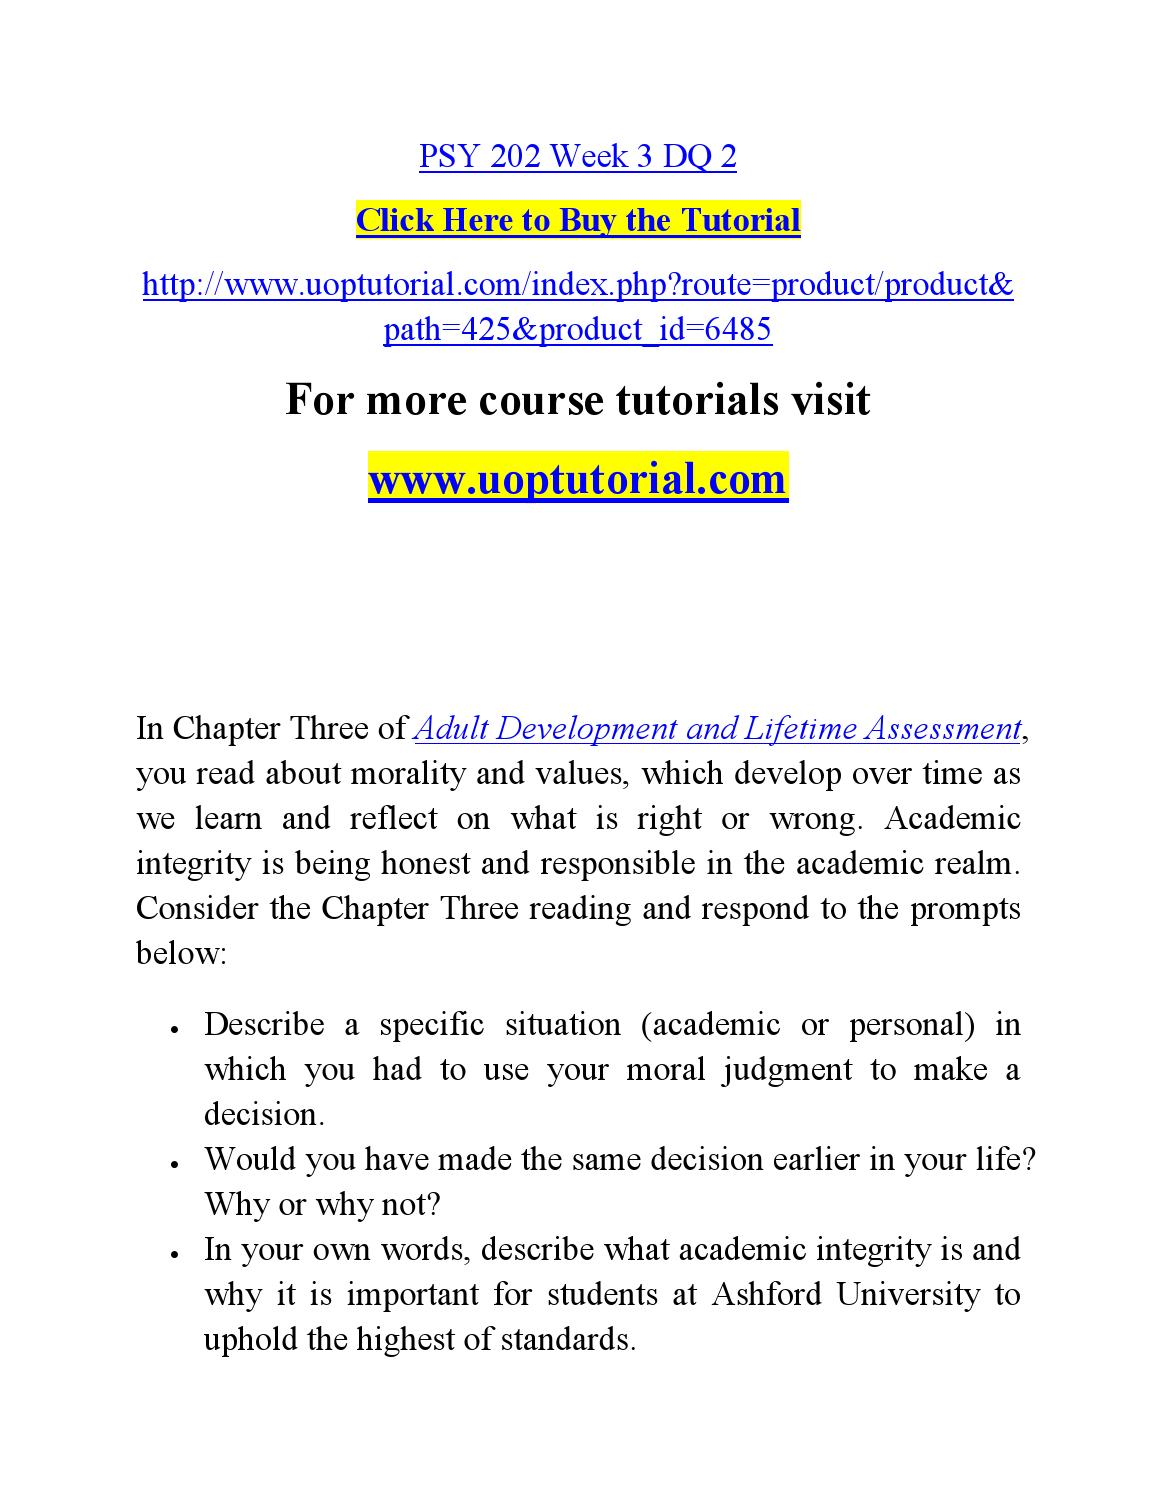 adult development and life assessment